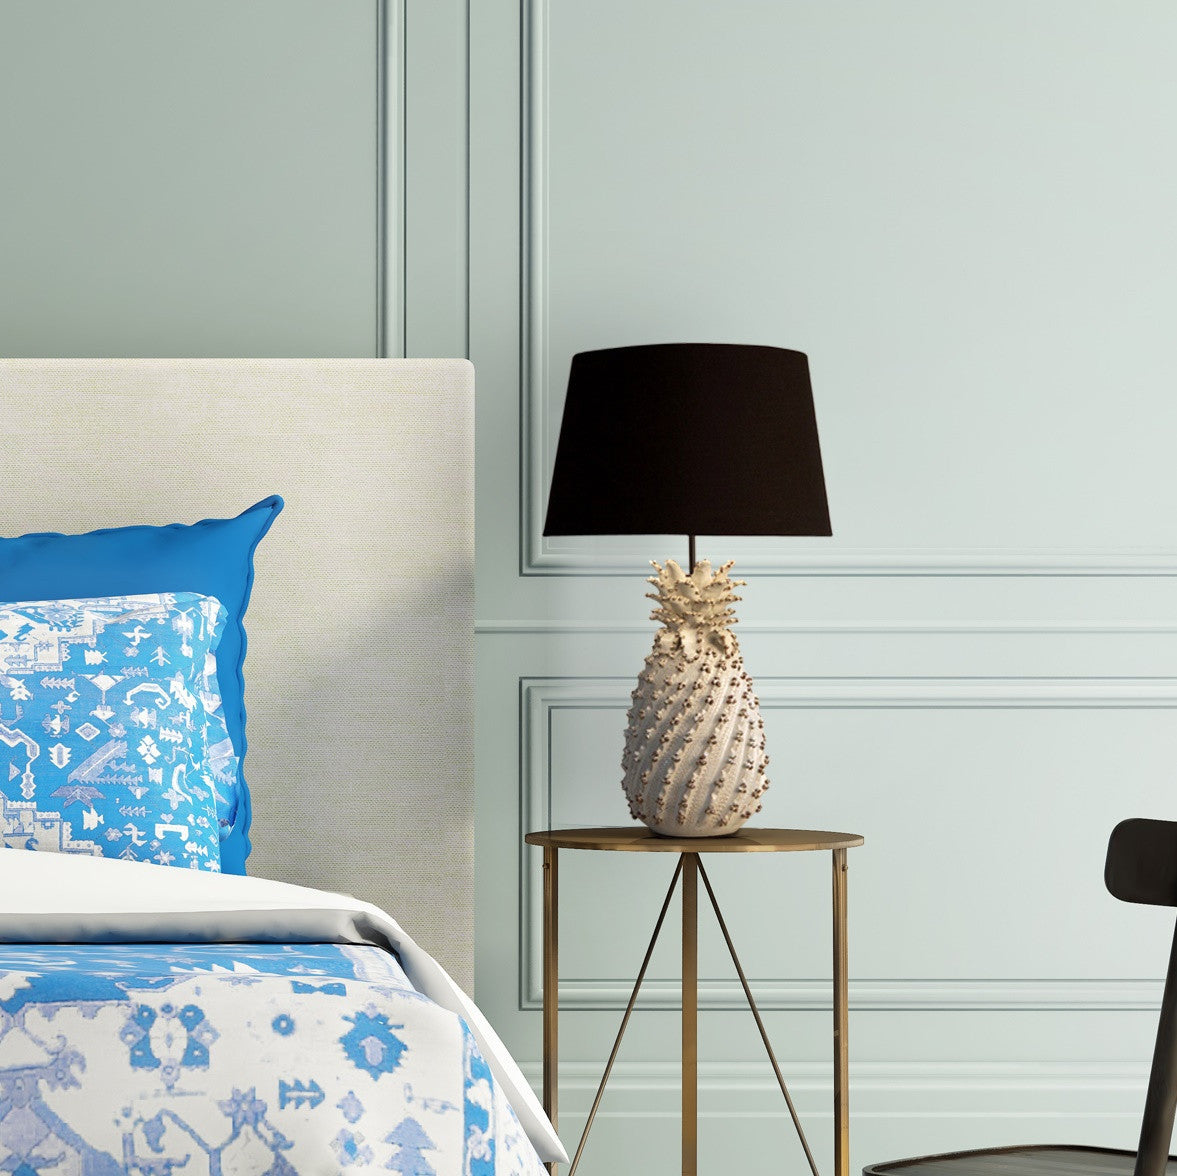 Pineapple Table Lamp in Bedroom | Lighting Collective